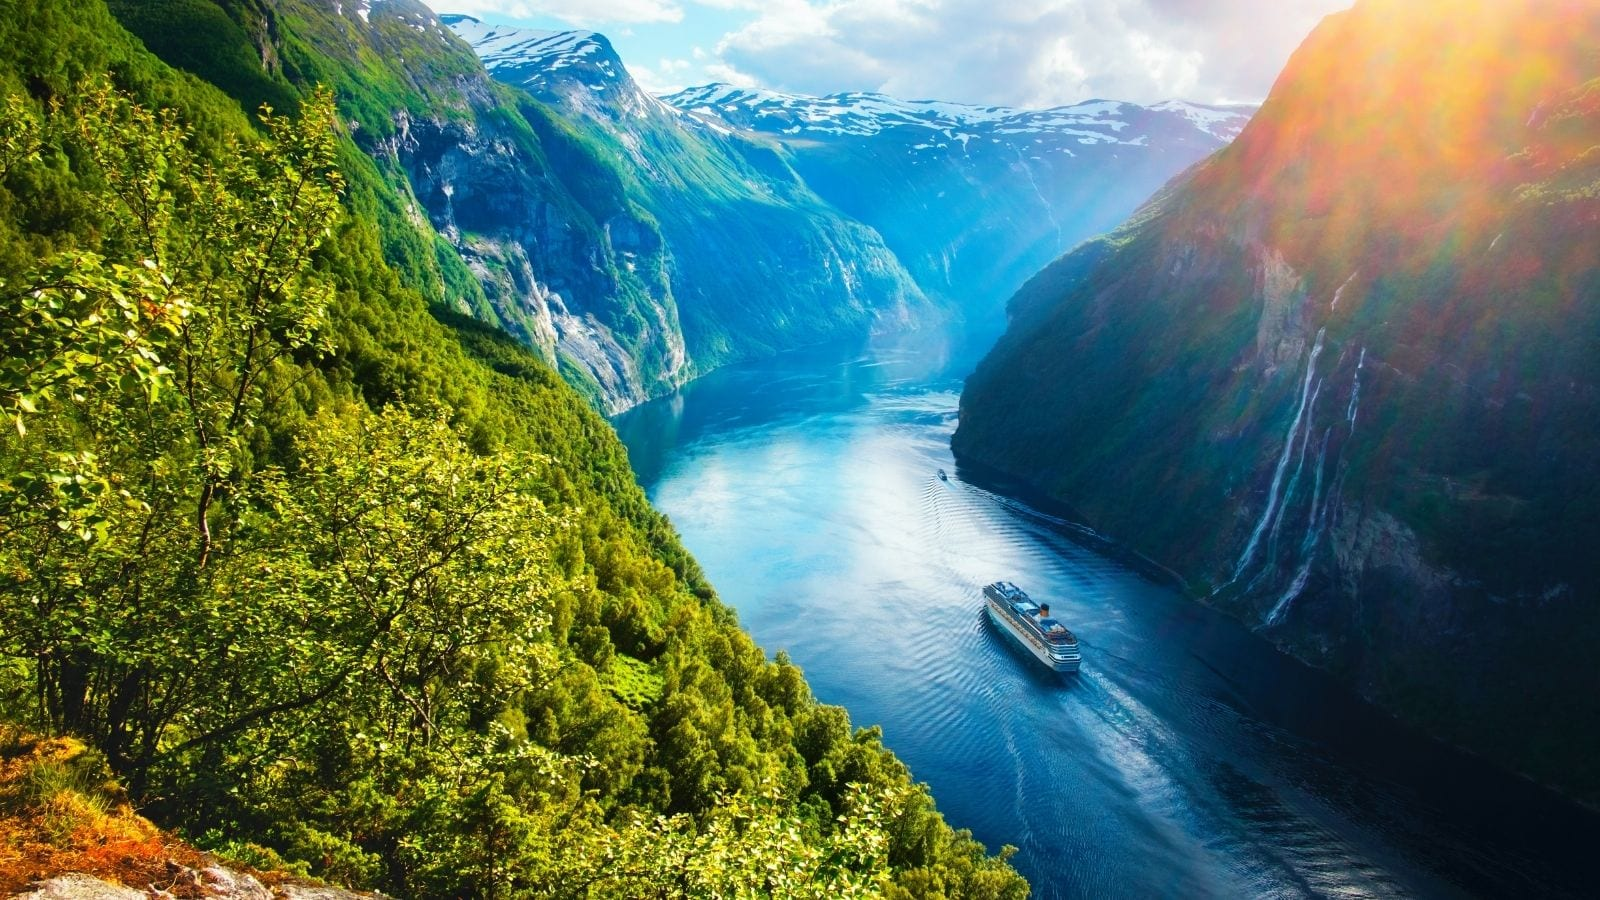 Breathtaking view of Sunnylvsfjorden Fjord with cruise ship in Norway (Photo: Smit / Shutterstock.com)